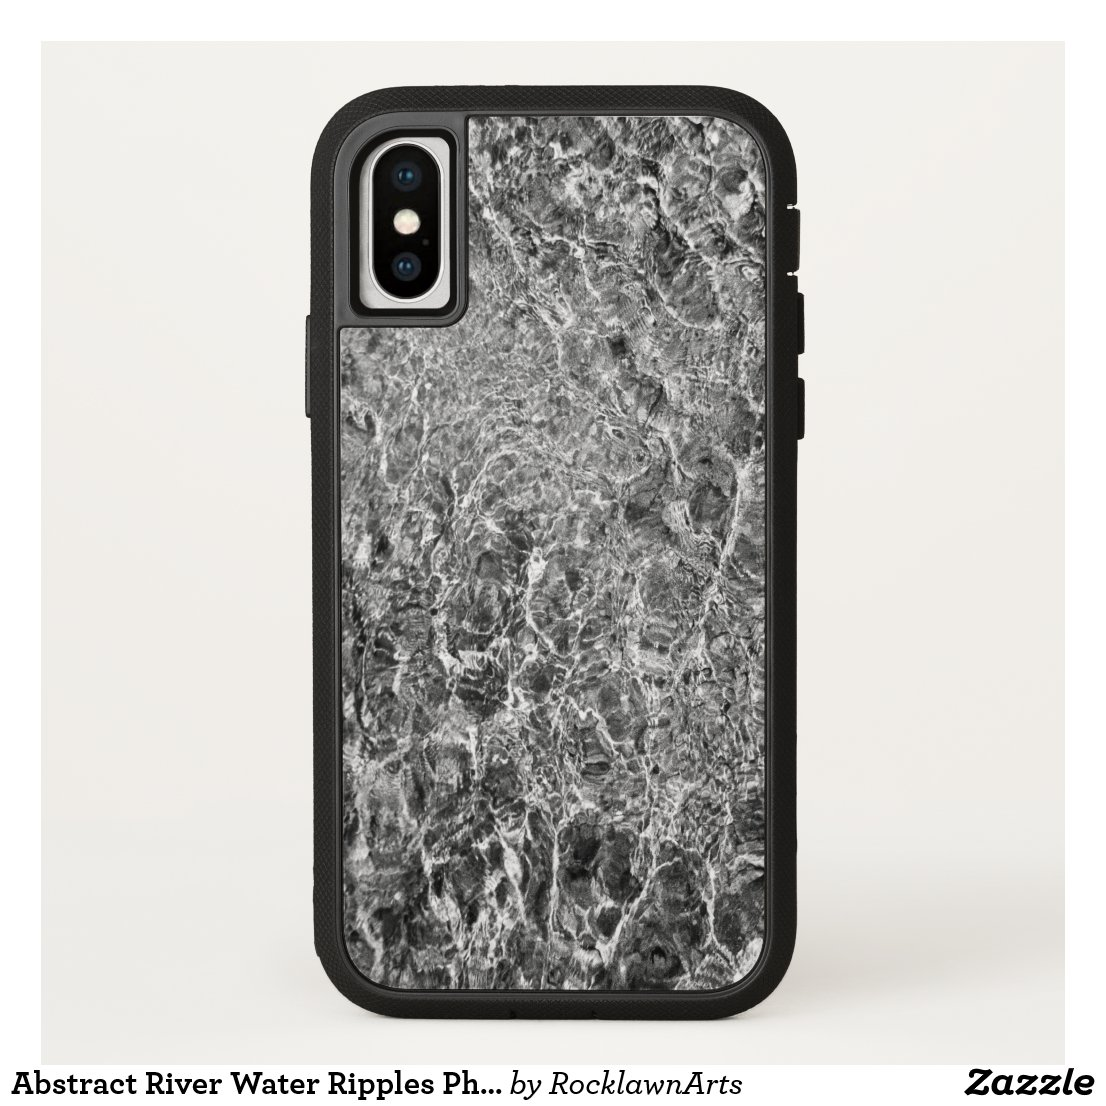 Abstract River Water Ripples Photo iPhone Case